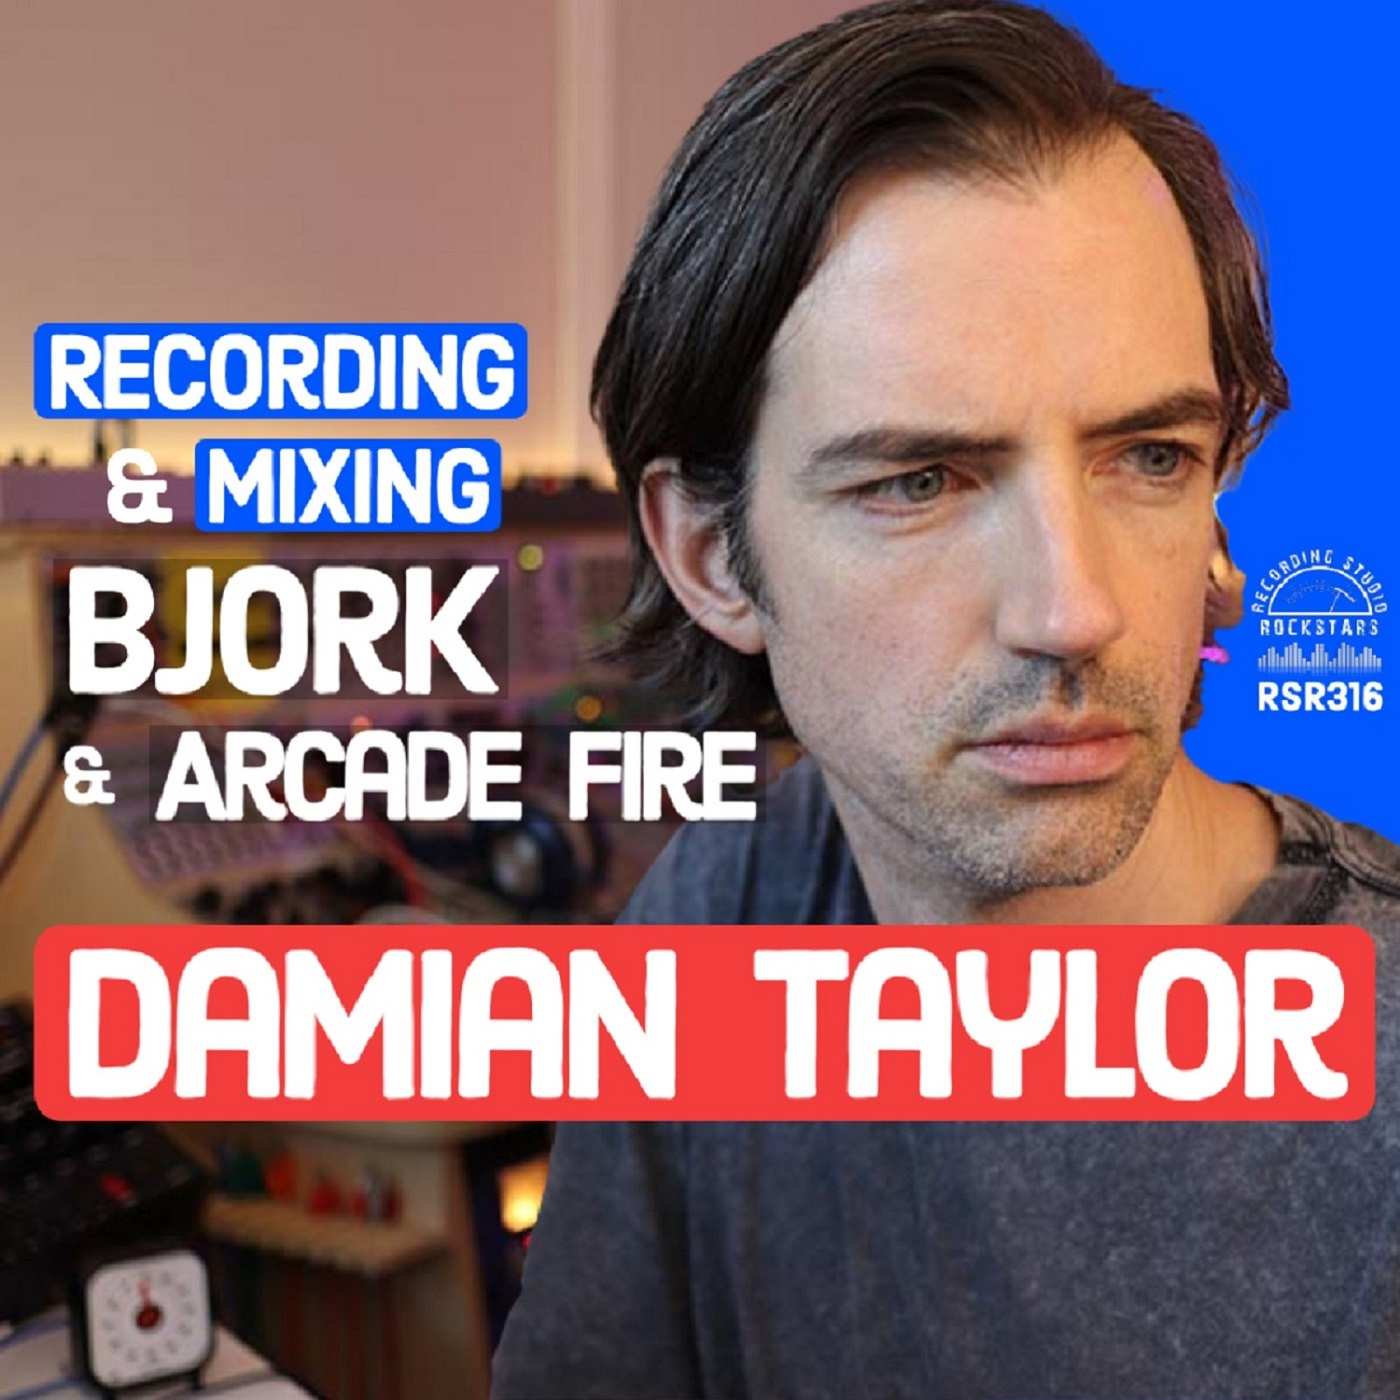 RSR316 - Damian Taylor -  Recording and Mixing Bjork and Arcade Fire